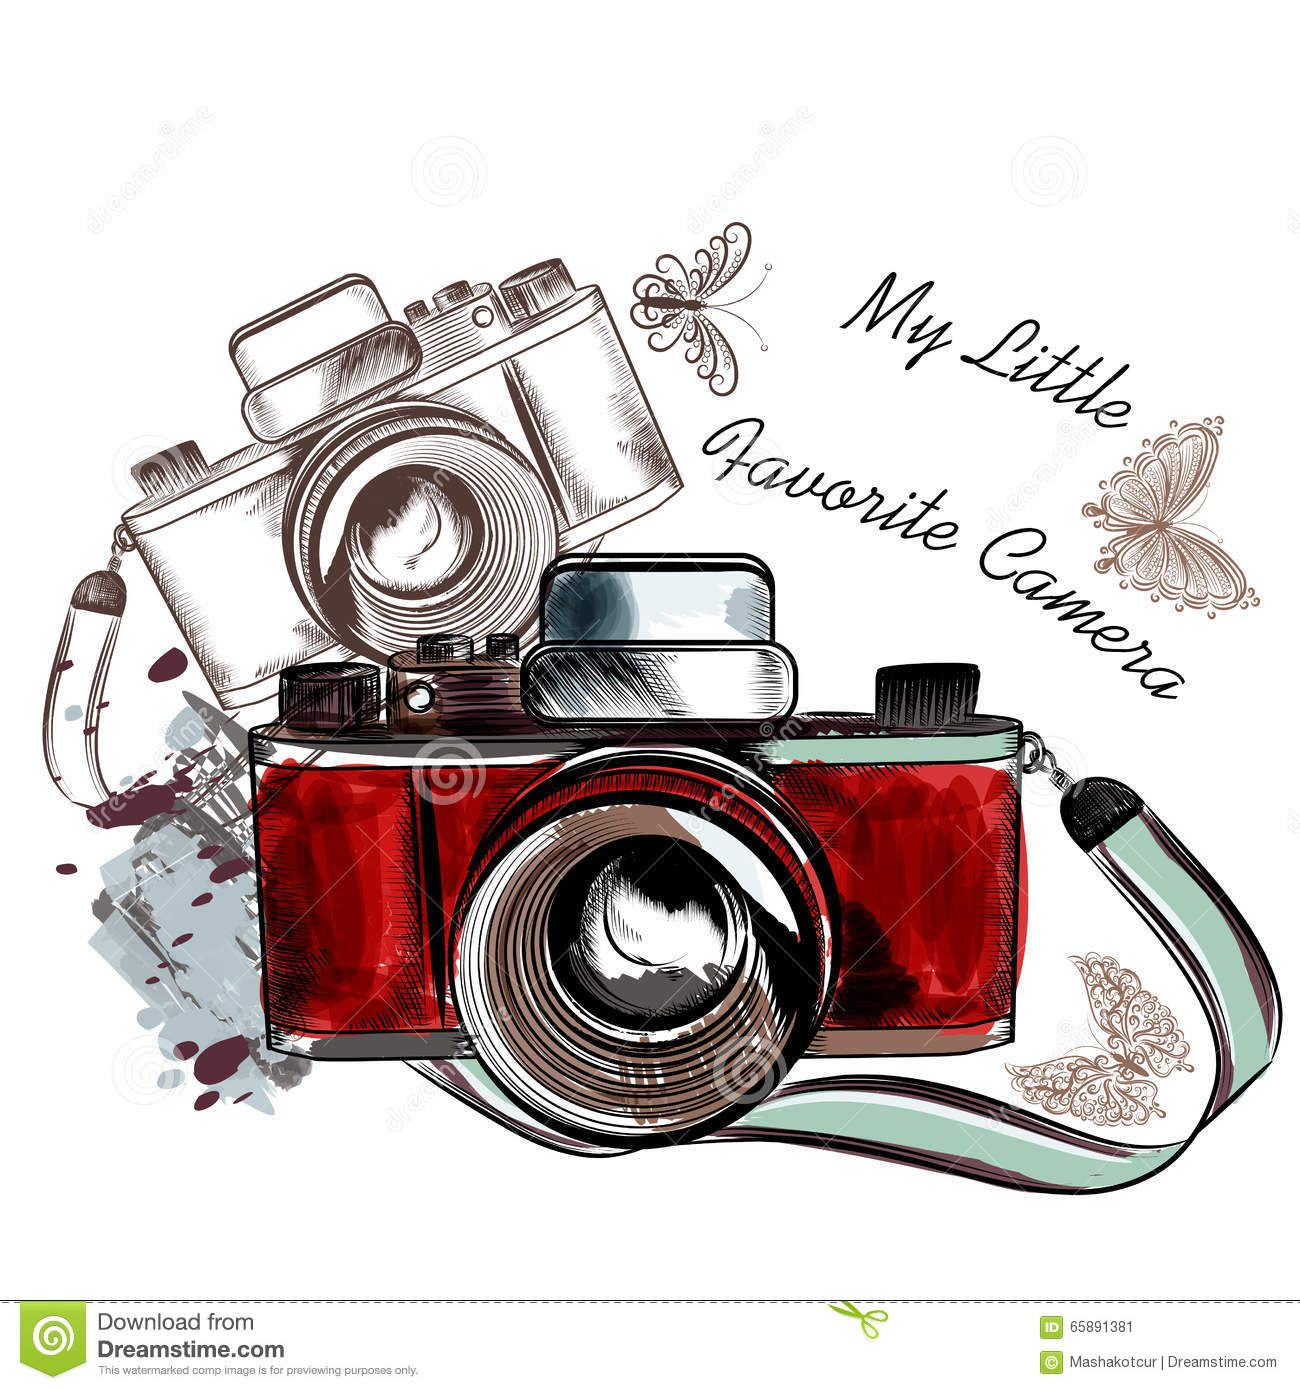 Vintage Camera Graphic Cute Hand Drawn Vintage Camera Vector Illustration Stock Camera Drawing How To Draw Hands Camera Art